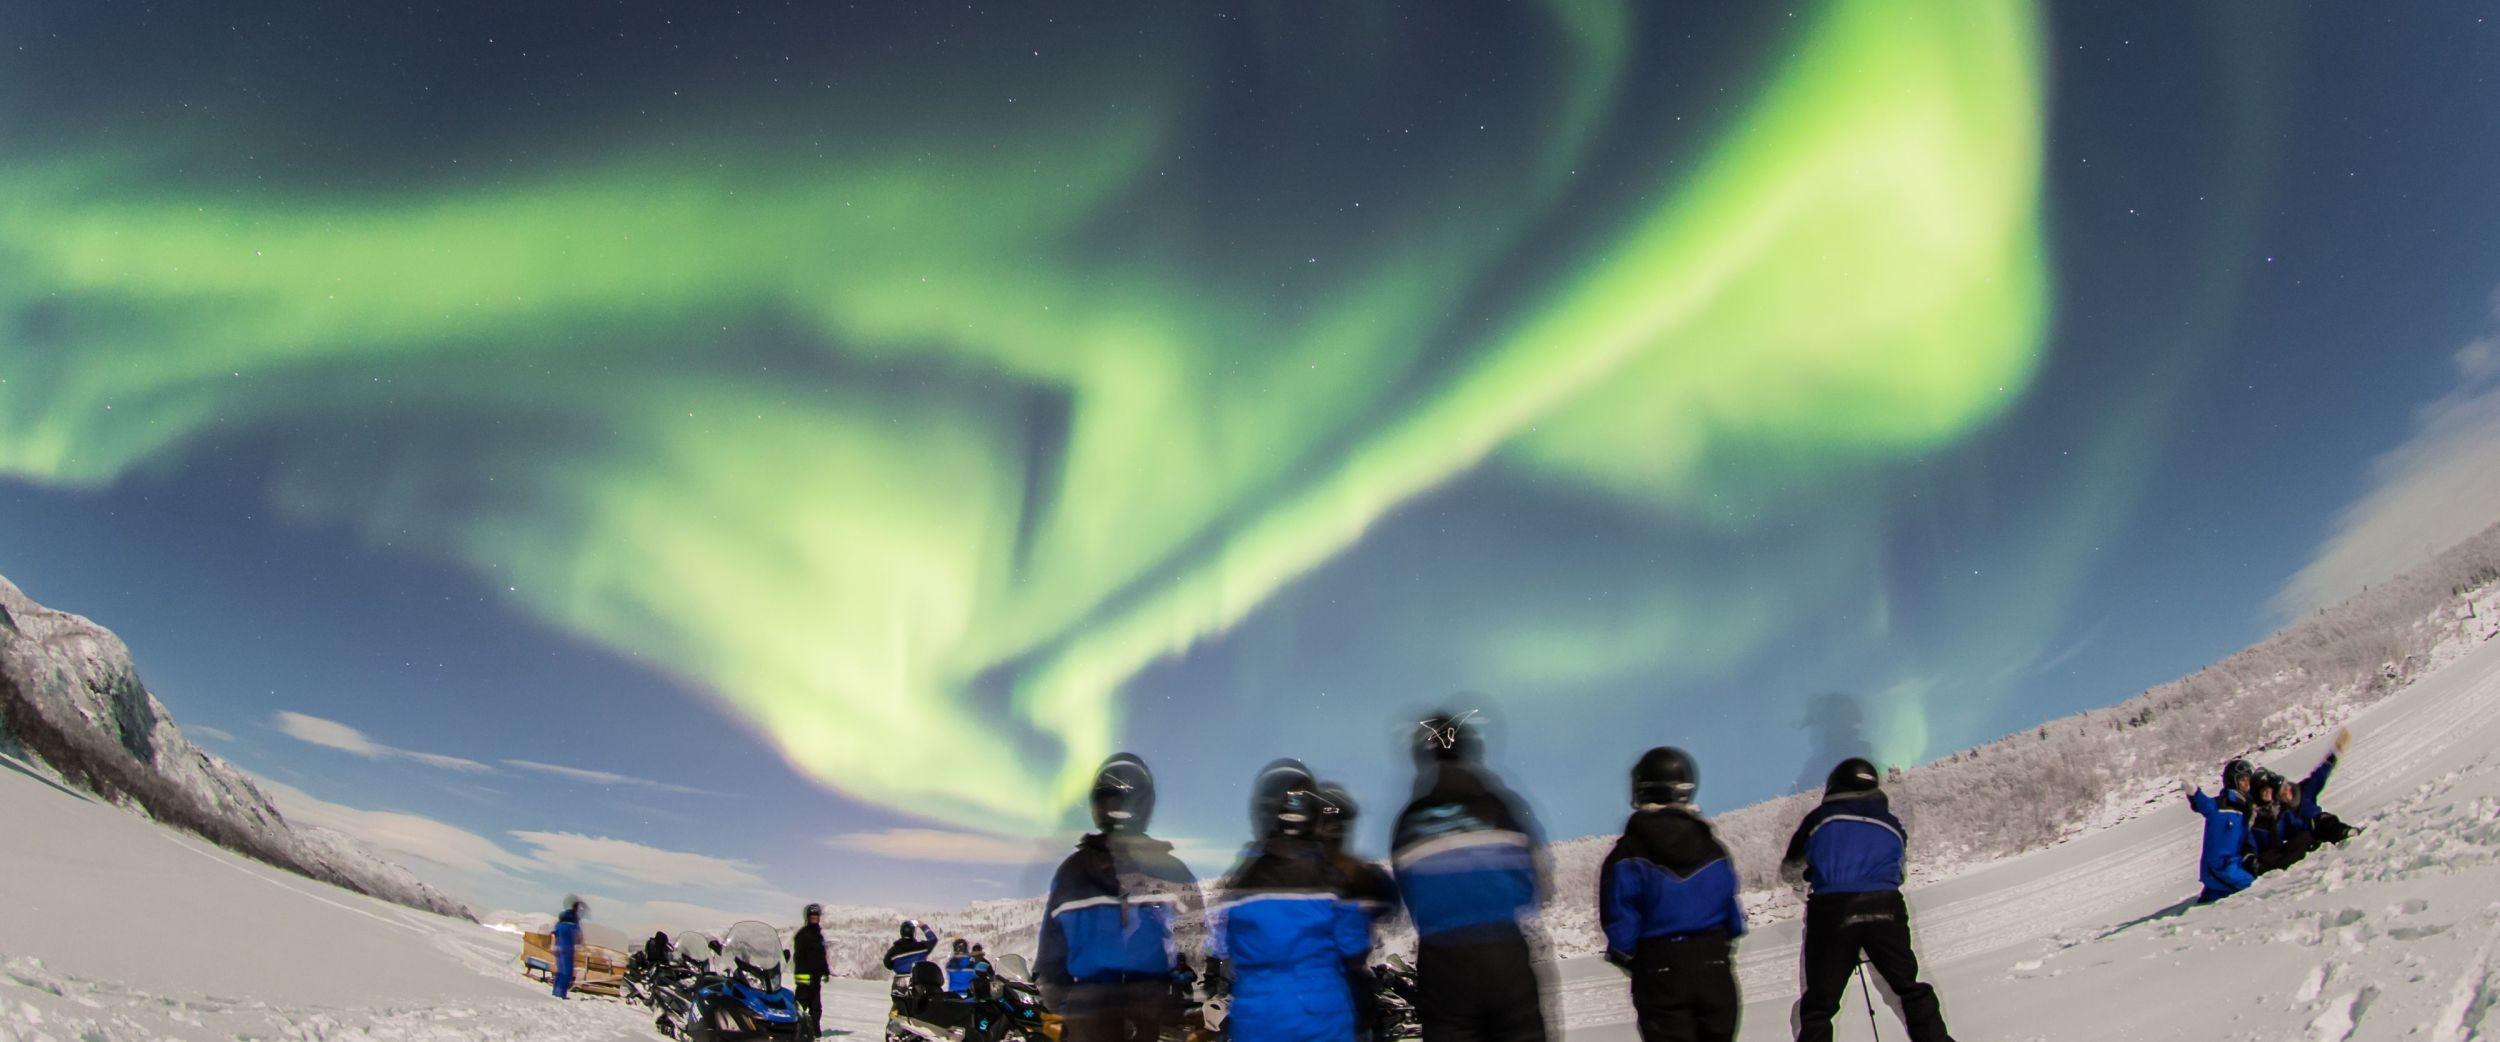 Snowmobiling under the northern lights, photo: Nicolas Vera-Ortiz